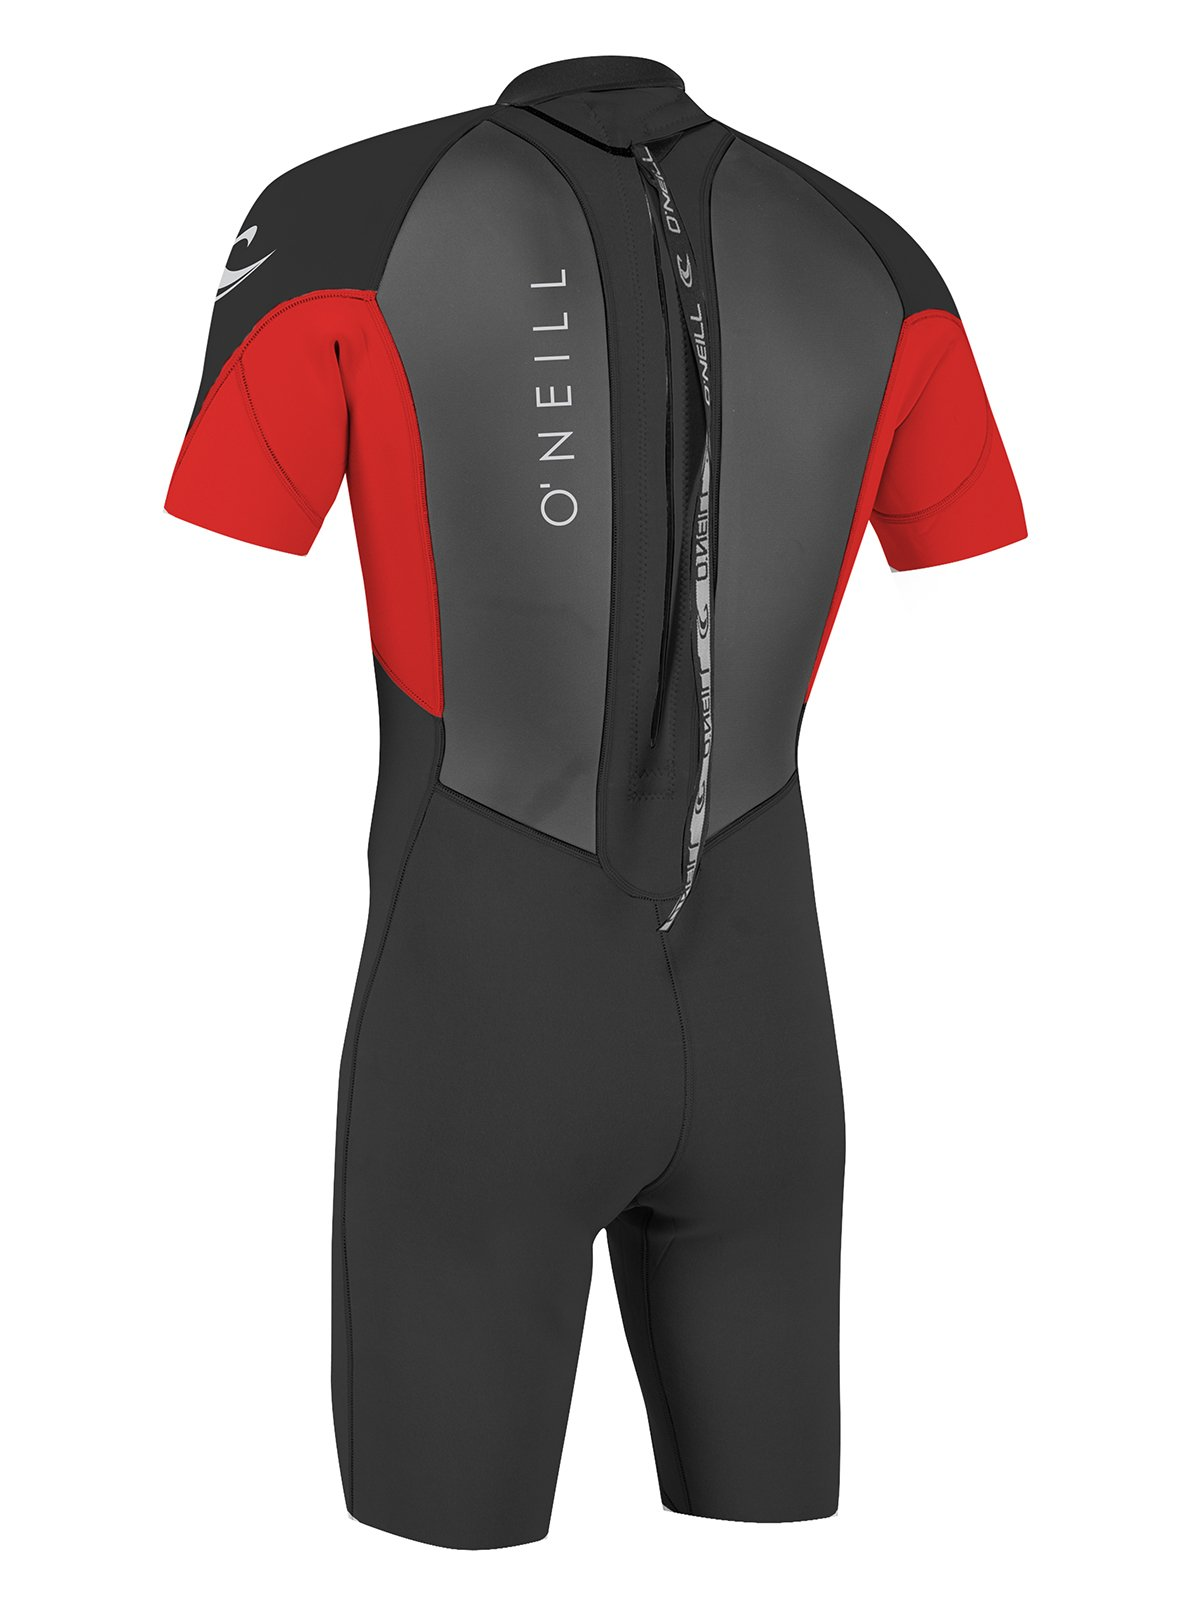 O'Neill Reactor-2 men's spring XL Tall Black/red (5124A) by O'Neill Wetsuits (Image #3)